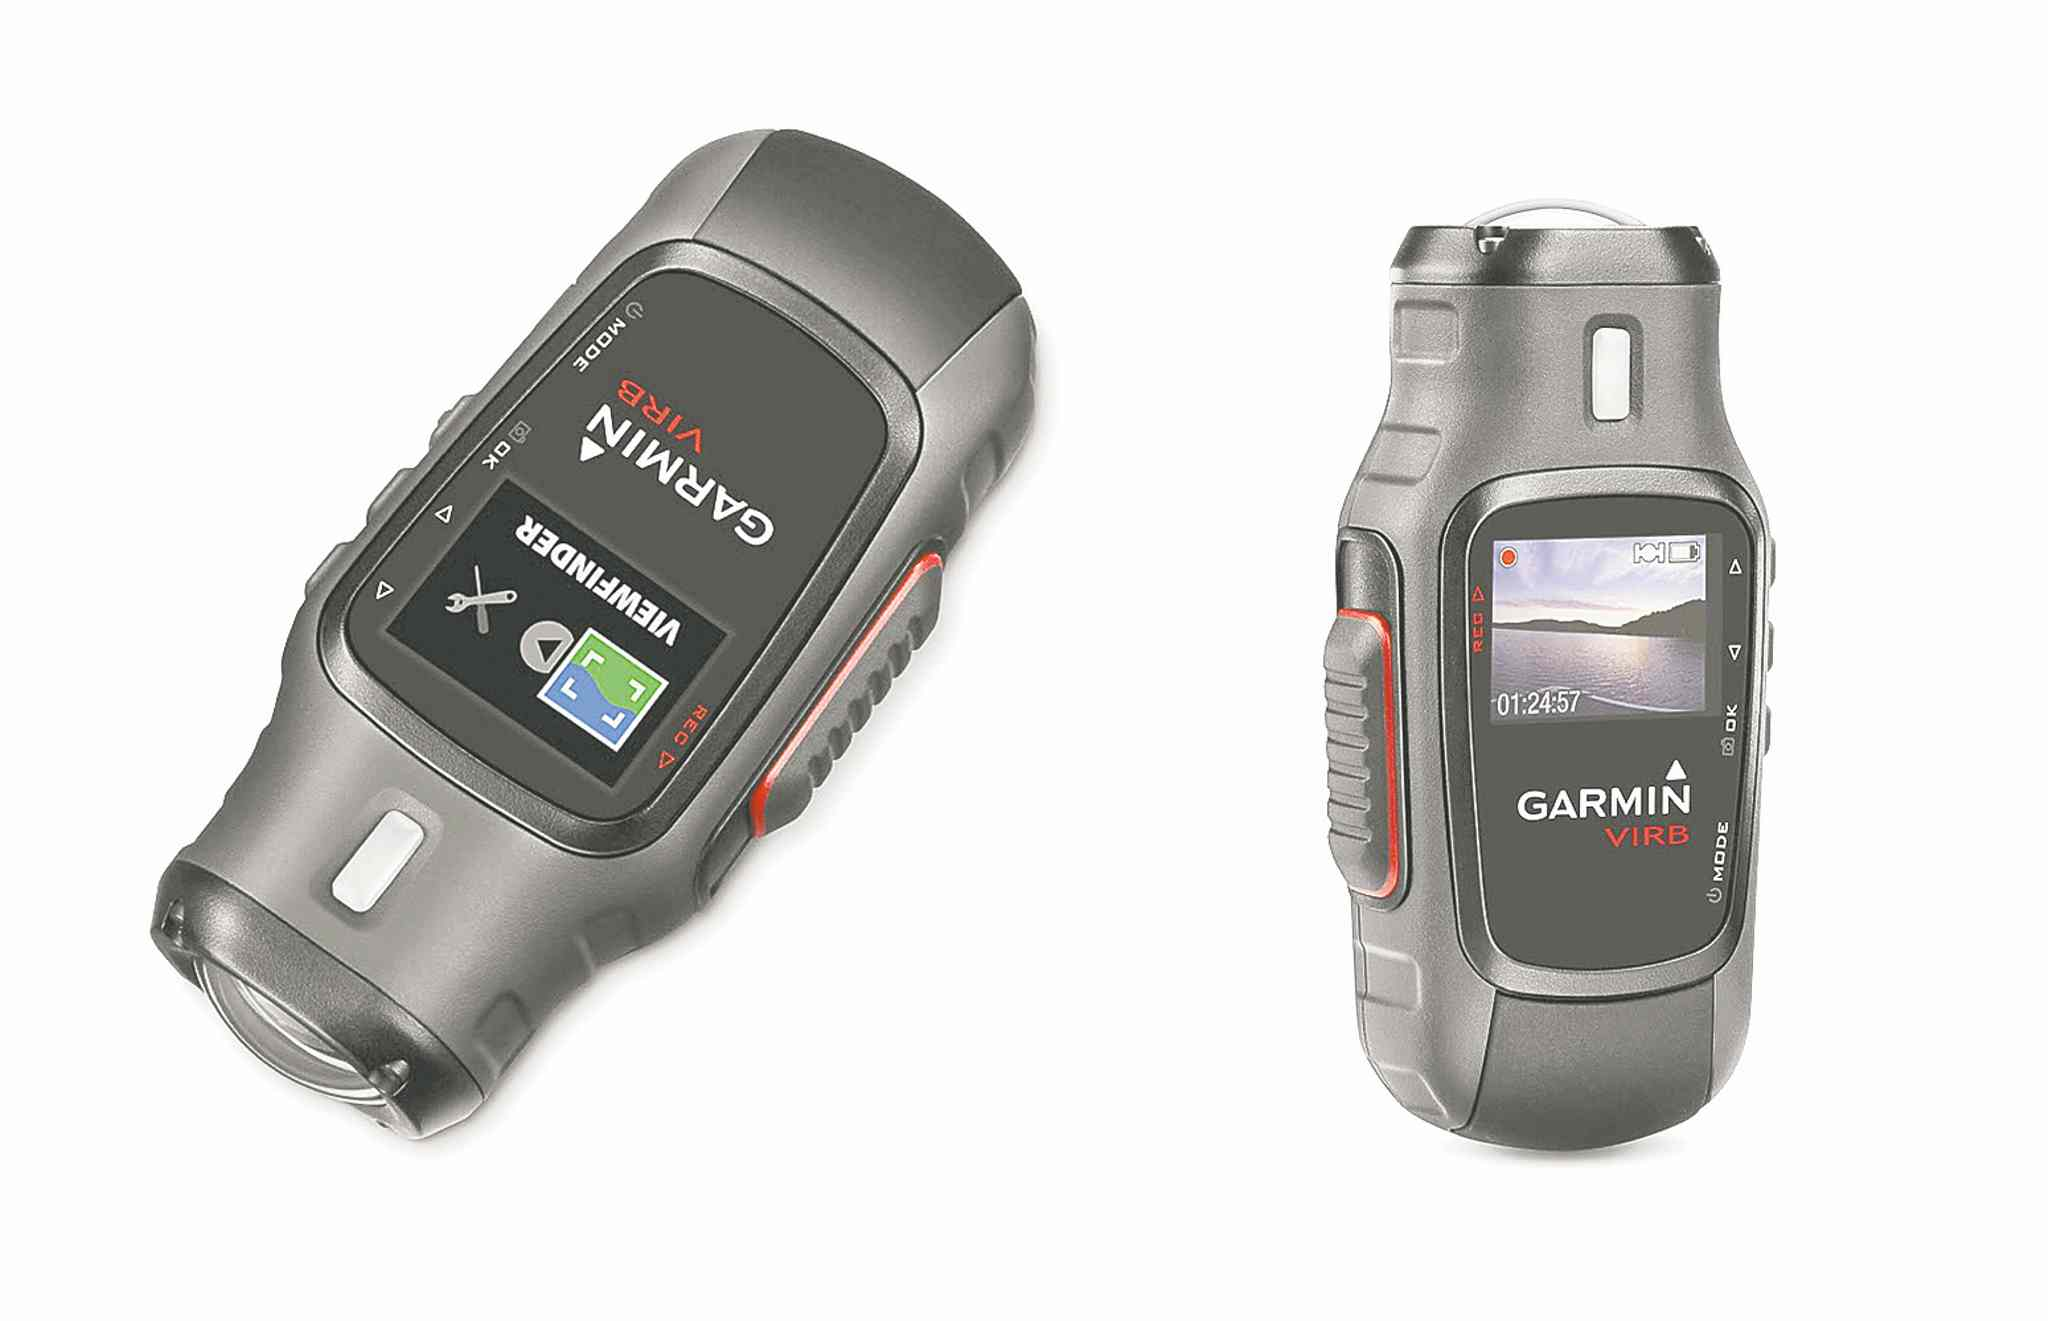 Garmin VIRB HD 1080p action camera (Handout/Garmin)